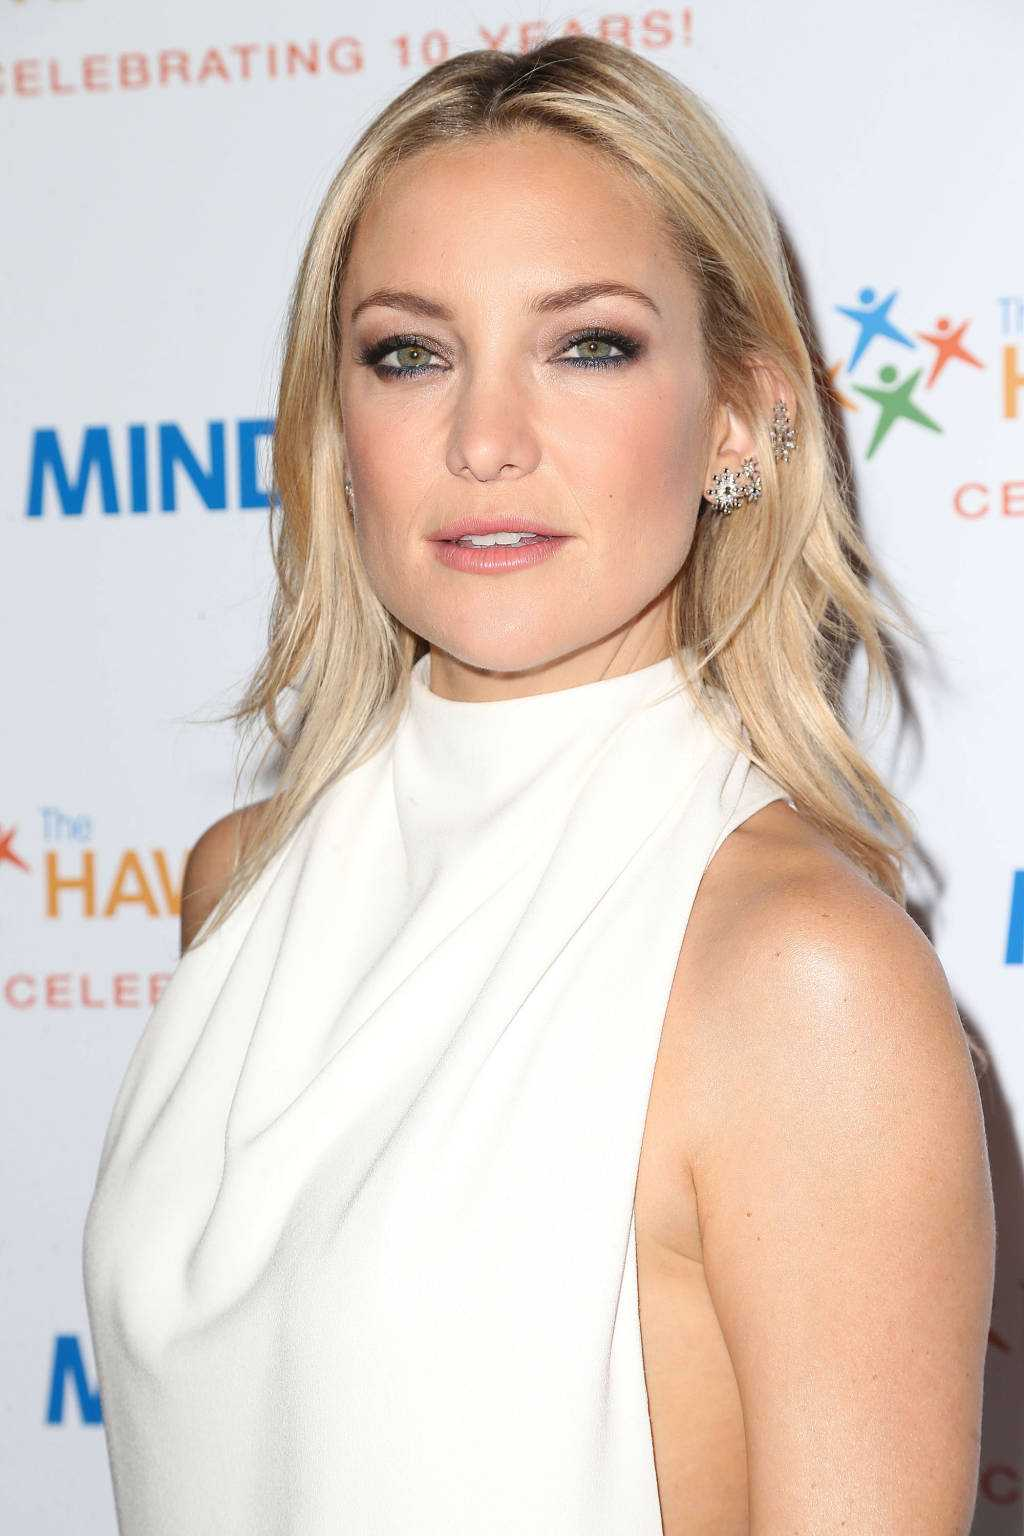 Kate Hudson Belts Out Star Spangled Banner For Independence Day | Kate Hudson